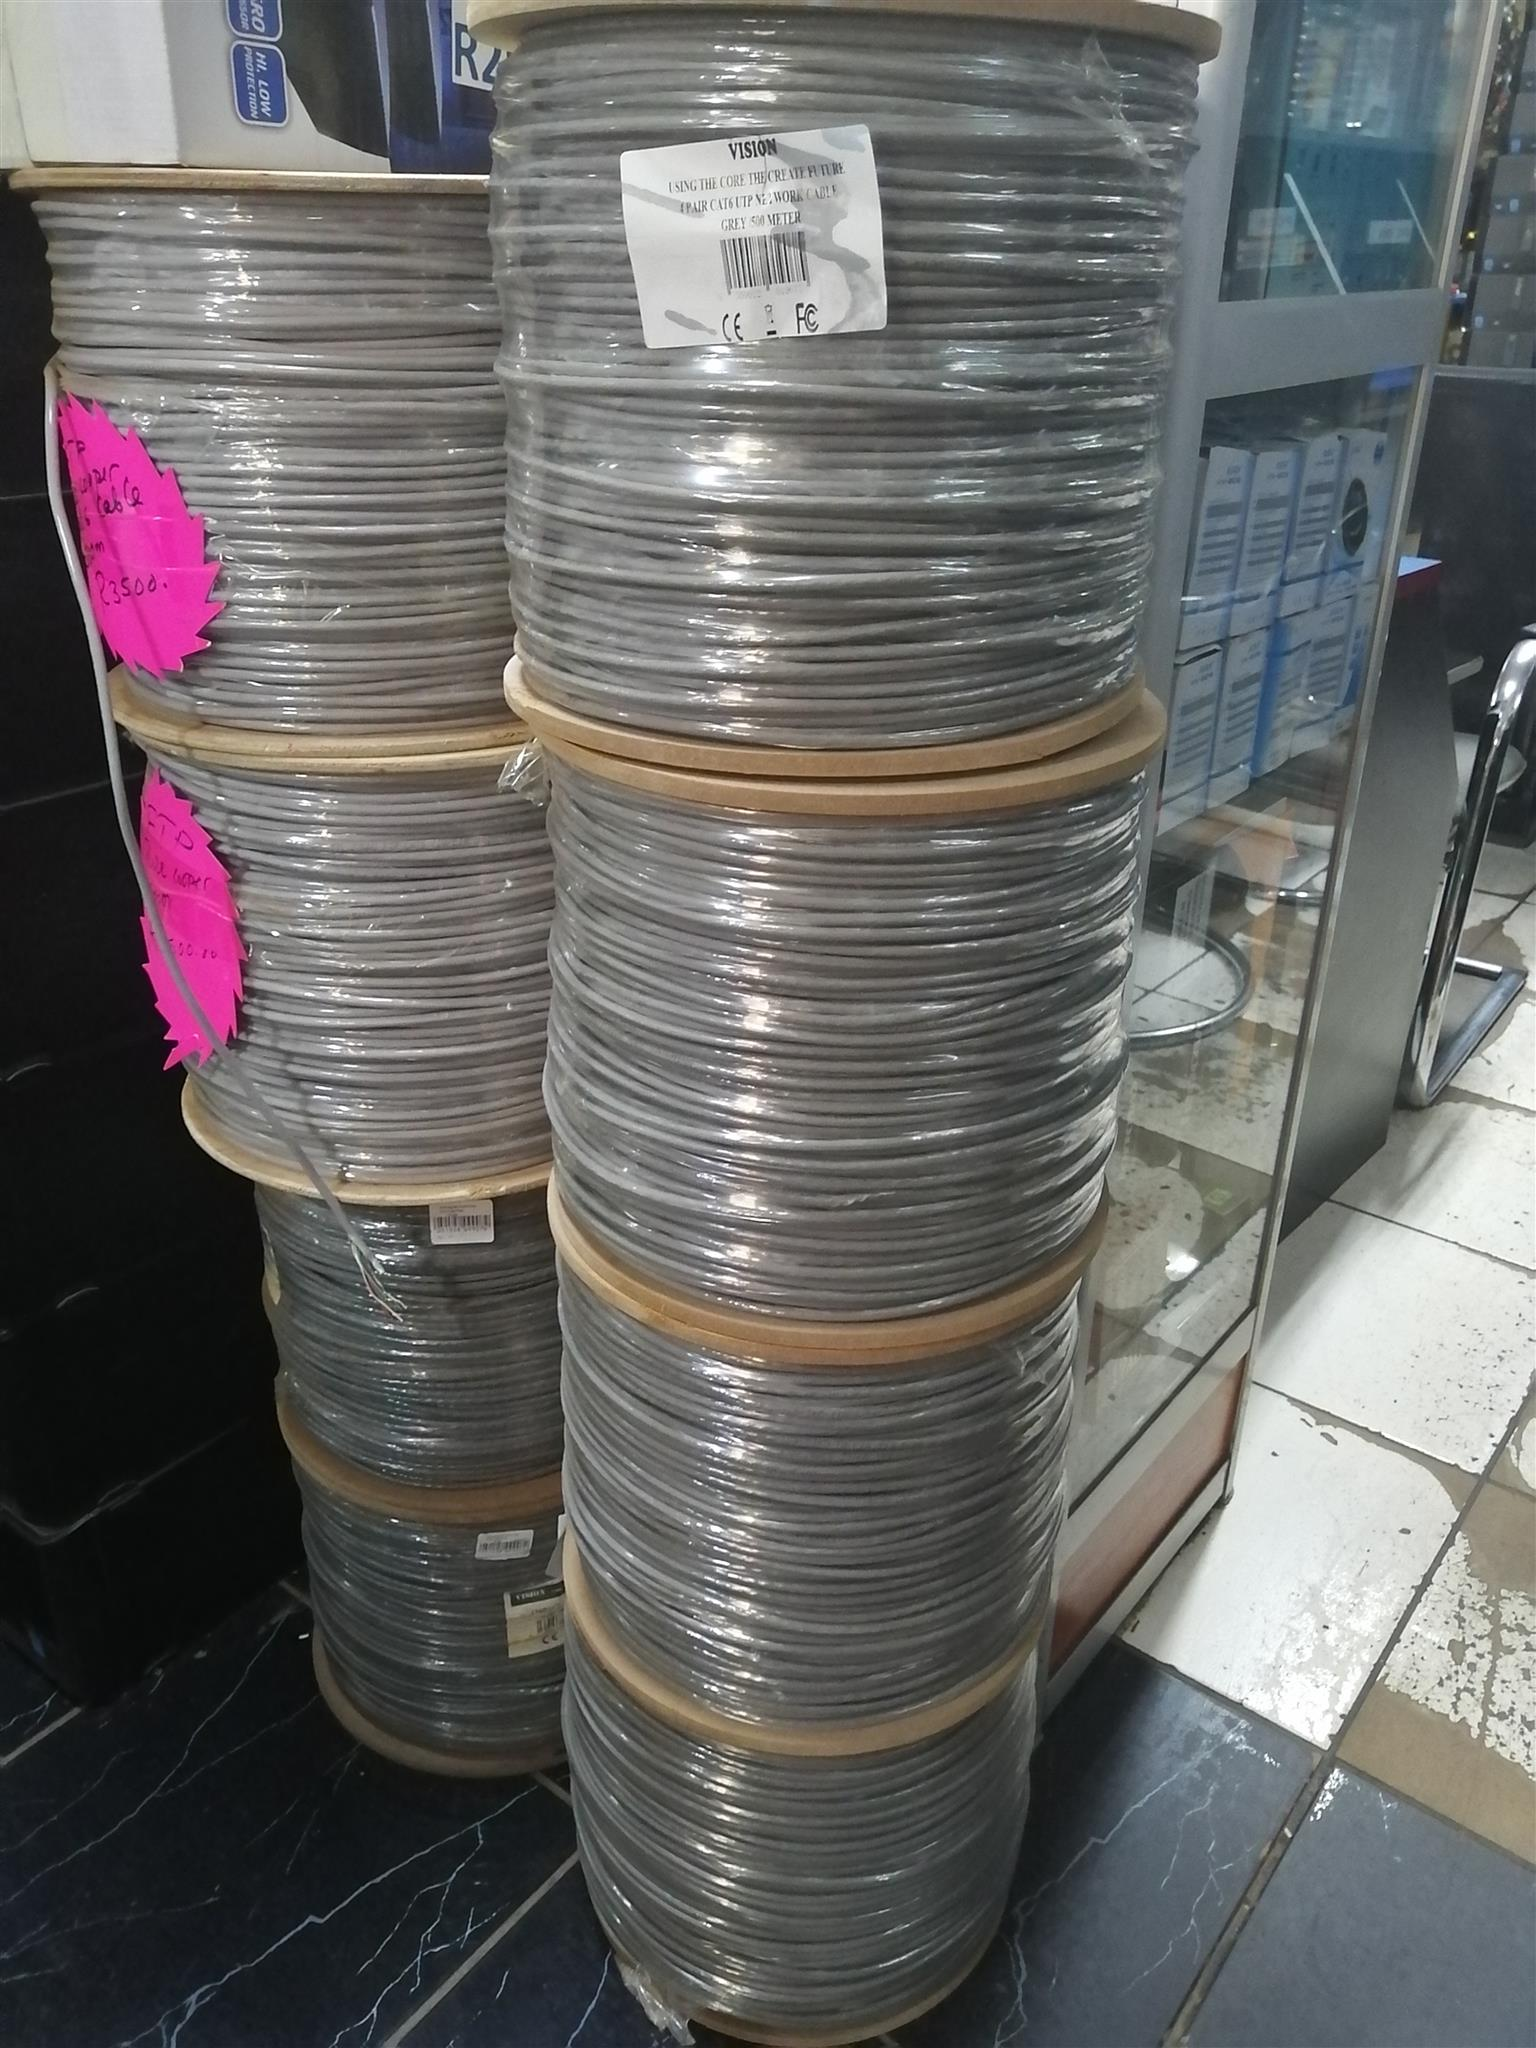 LANCABLE-CAT6E-500M UTP CAT6 Copper Coated Aluminum Core 600m Network